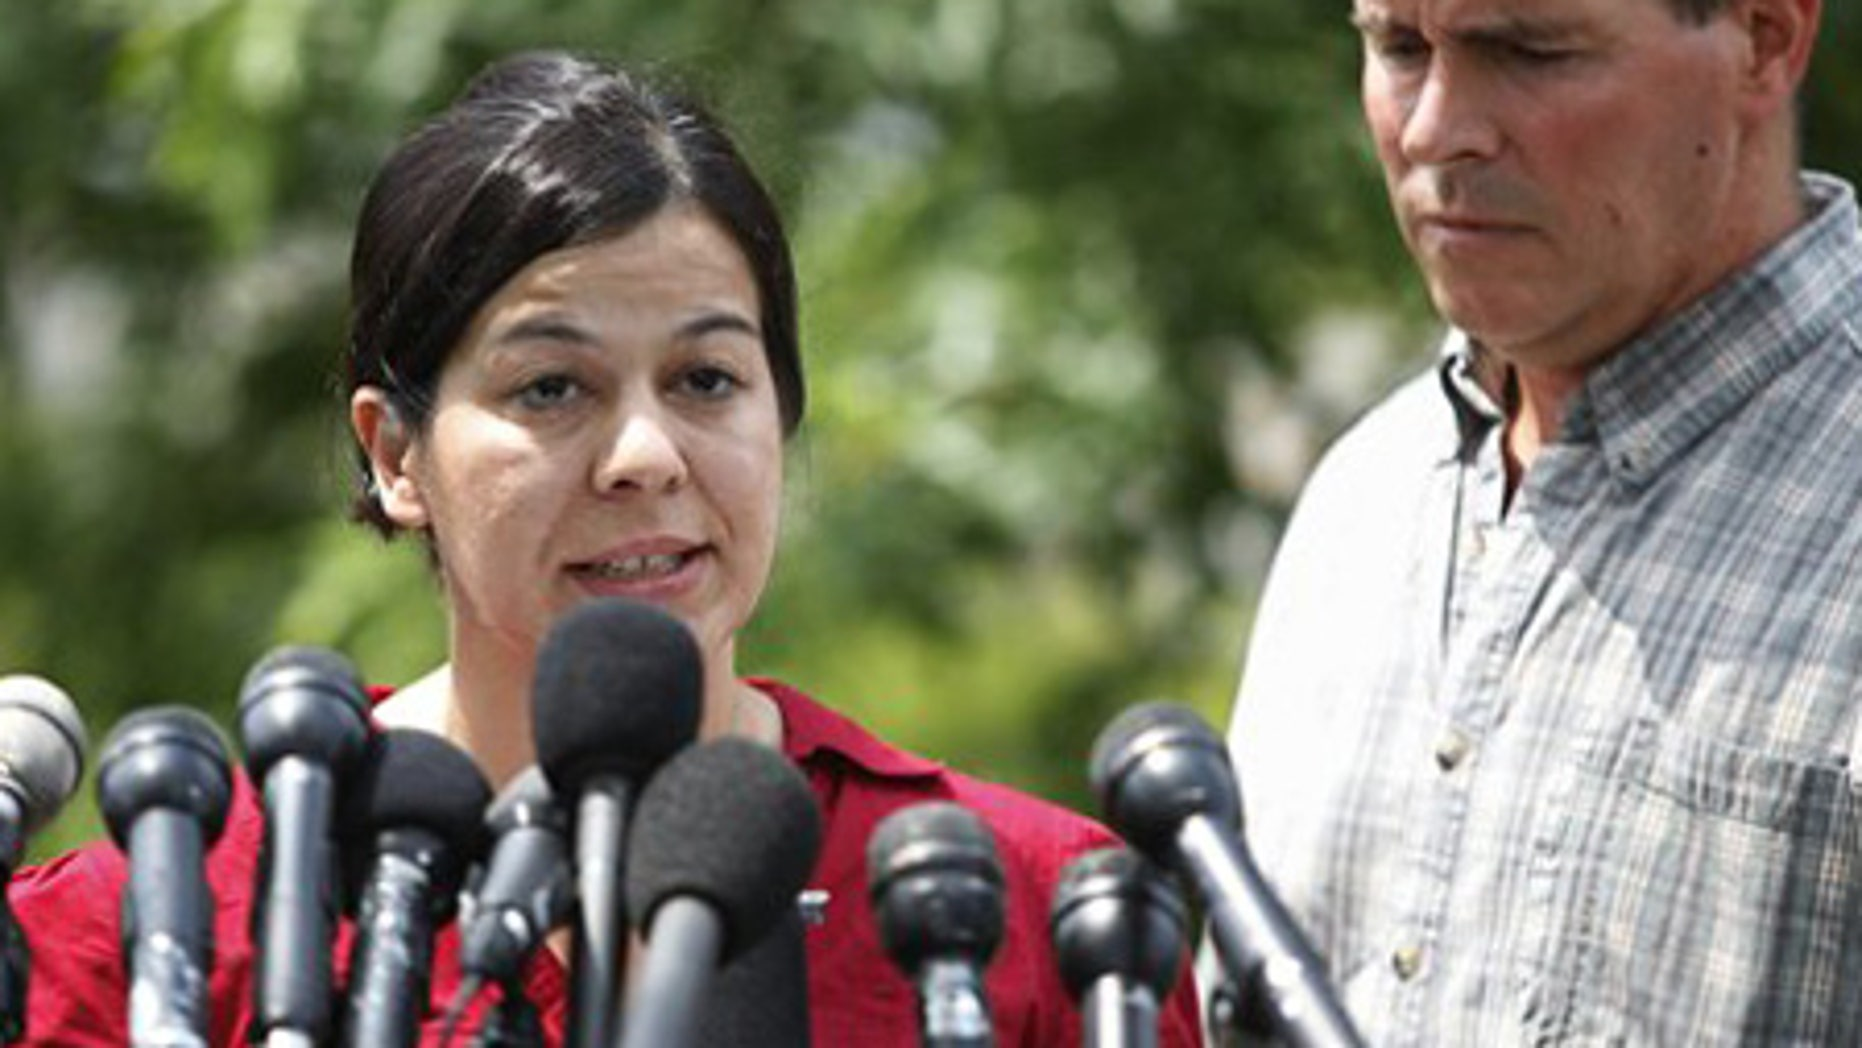 July 29: Lucia Whalen speaks during a media availability in Cambridge, Mass., alongside her husband.